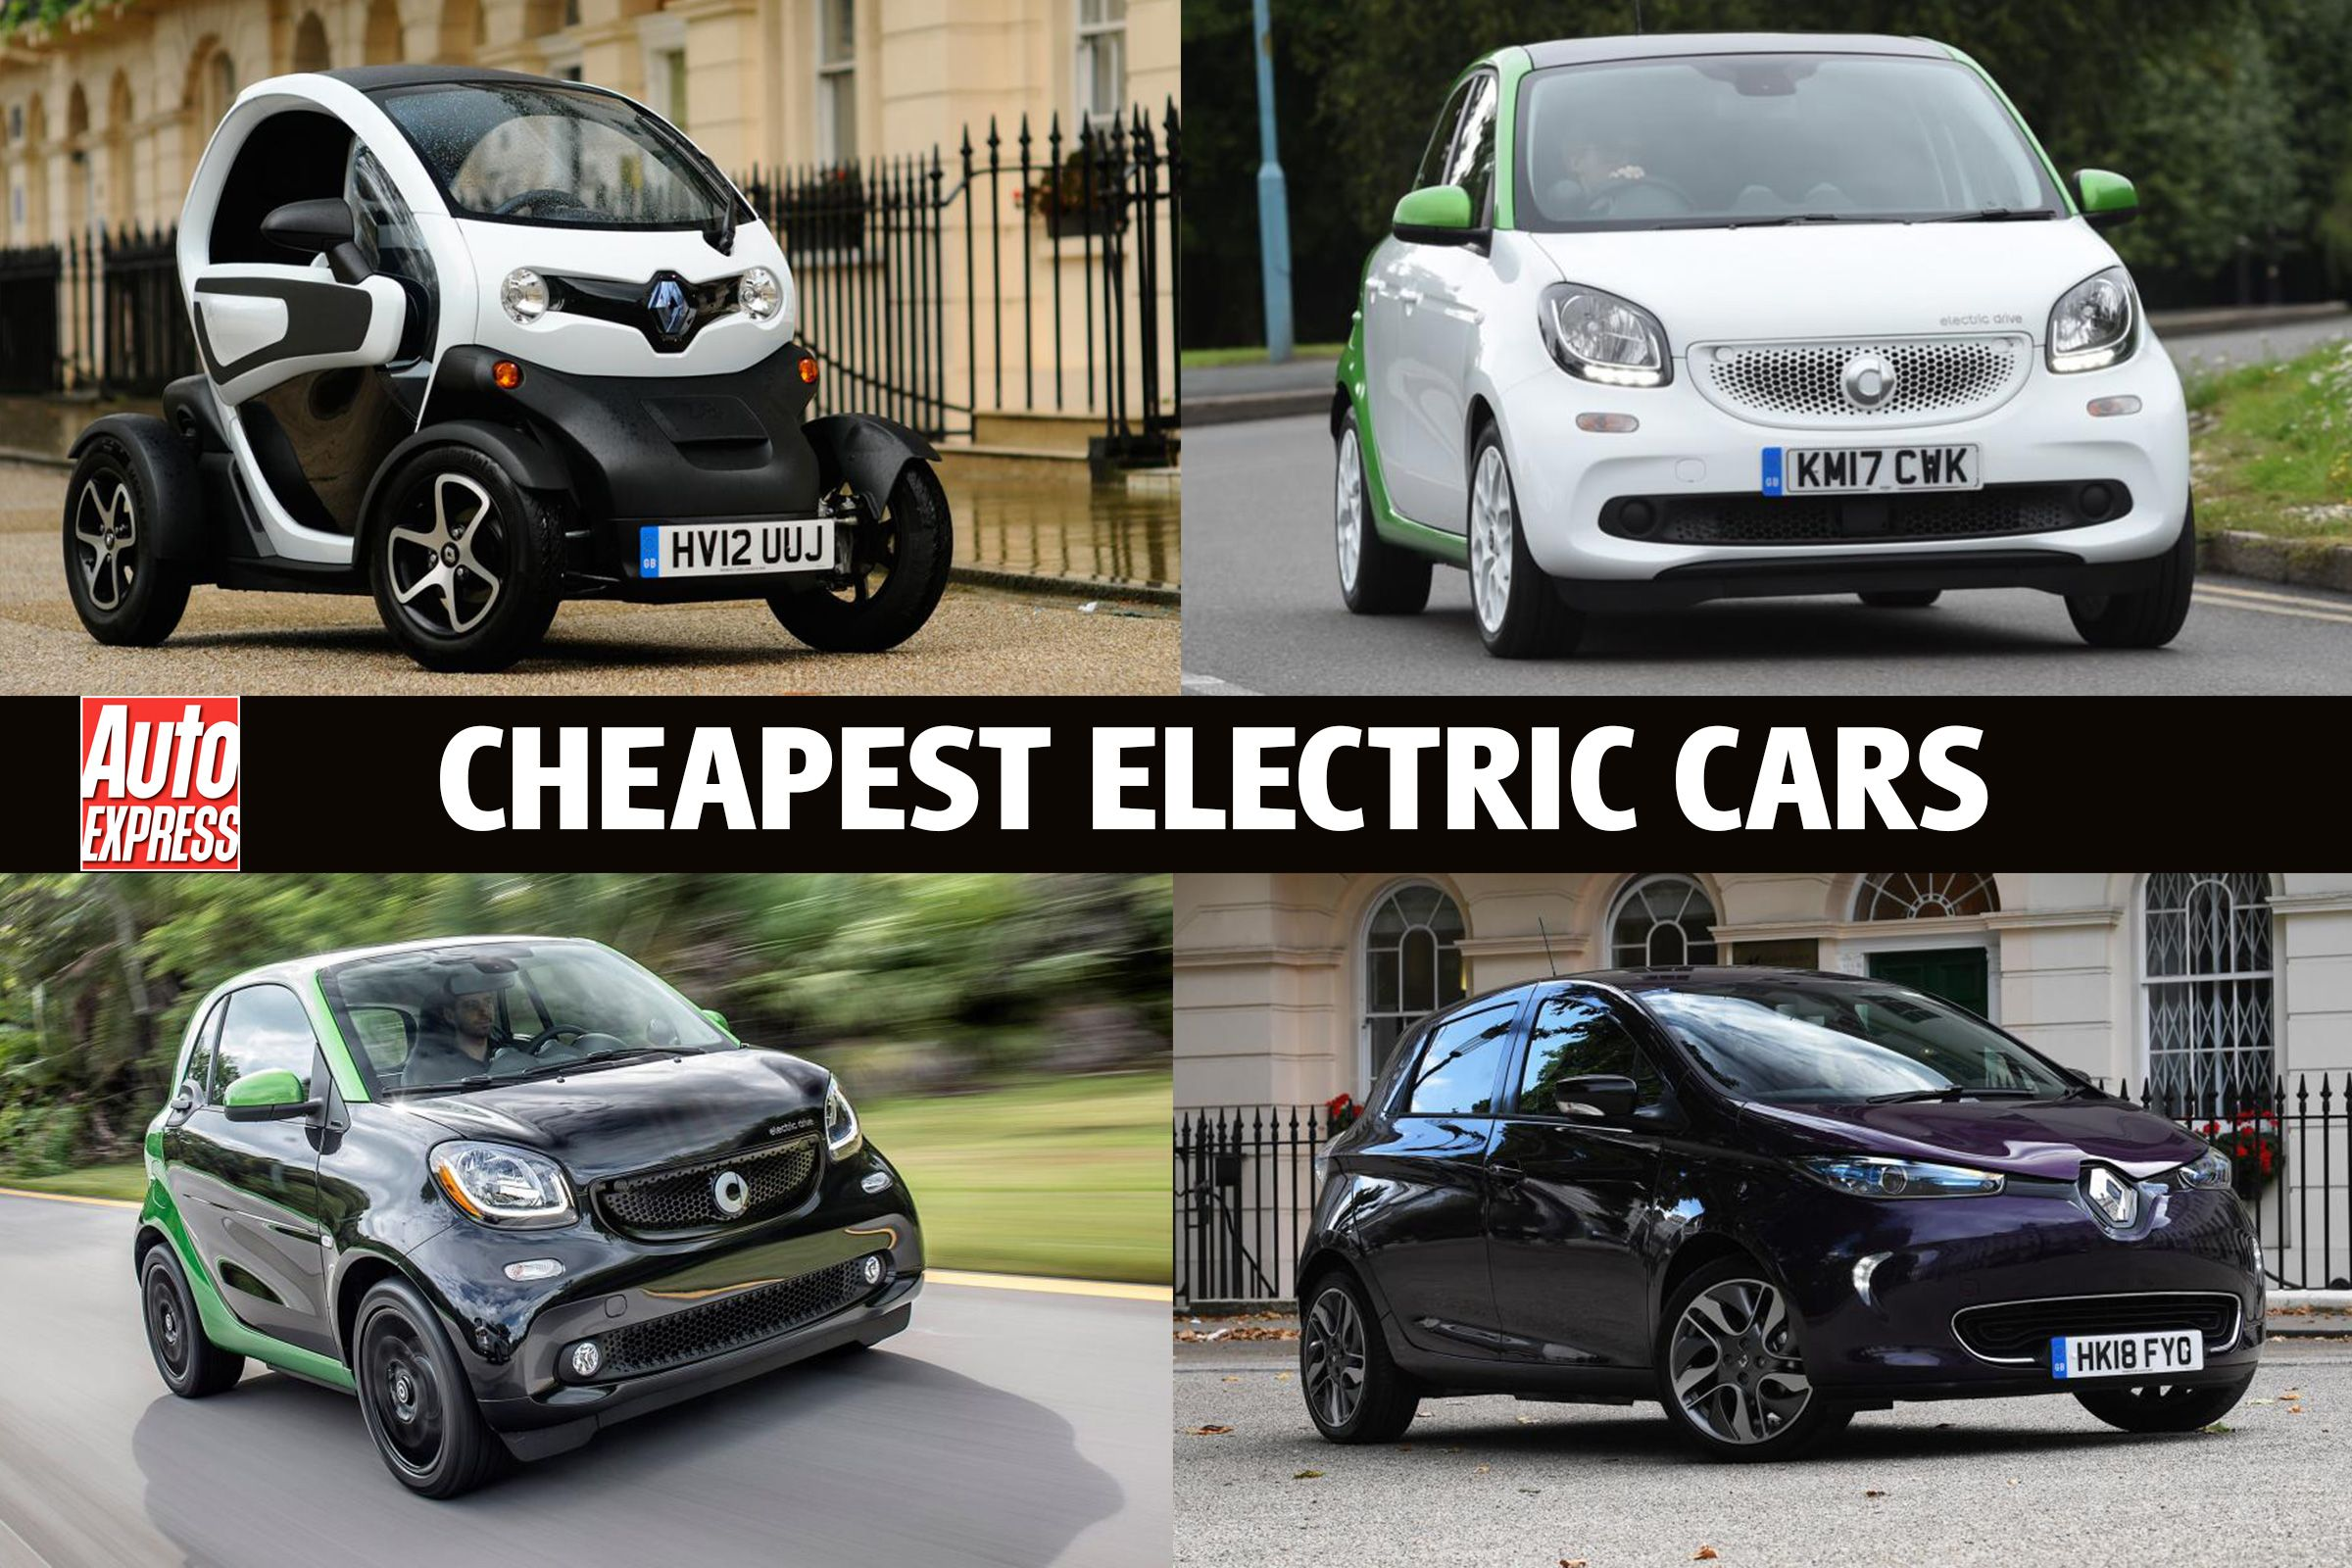 8 Cheapest Electric Cars Electric Cars For Sale Cars For Sale Uk Electric Cars